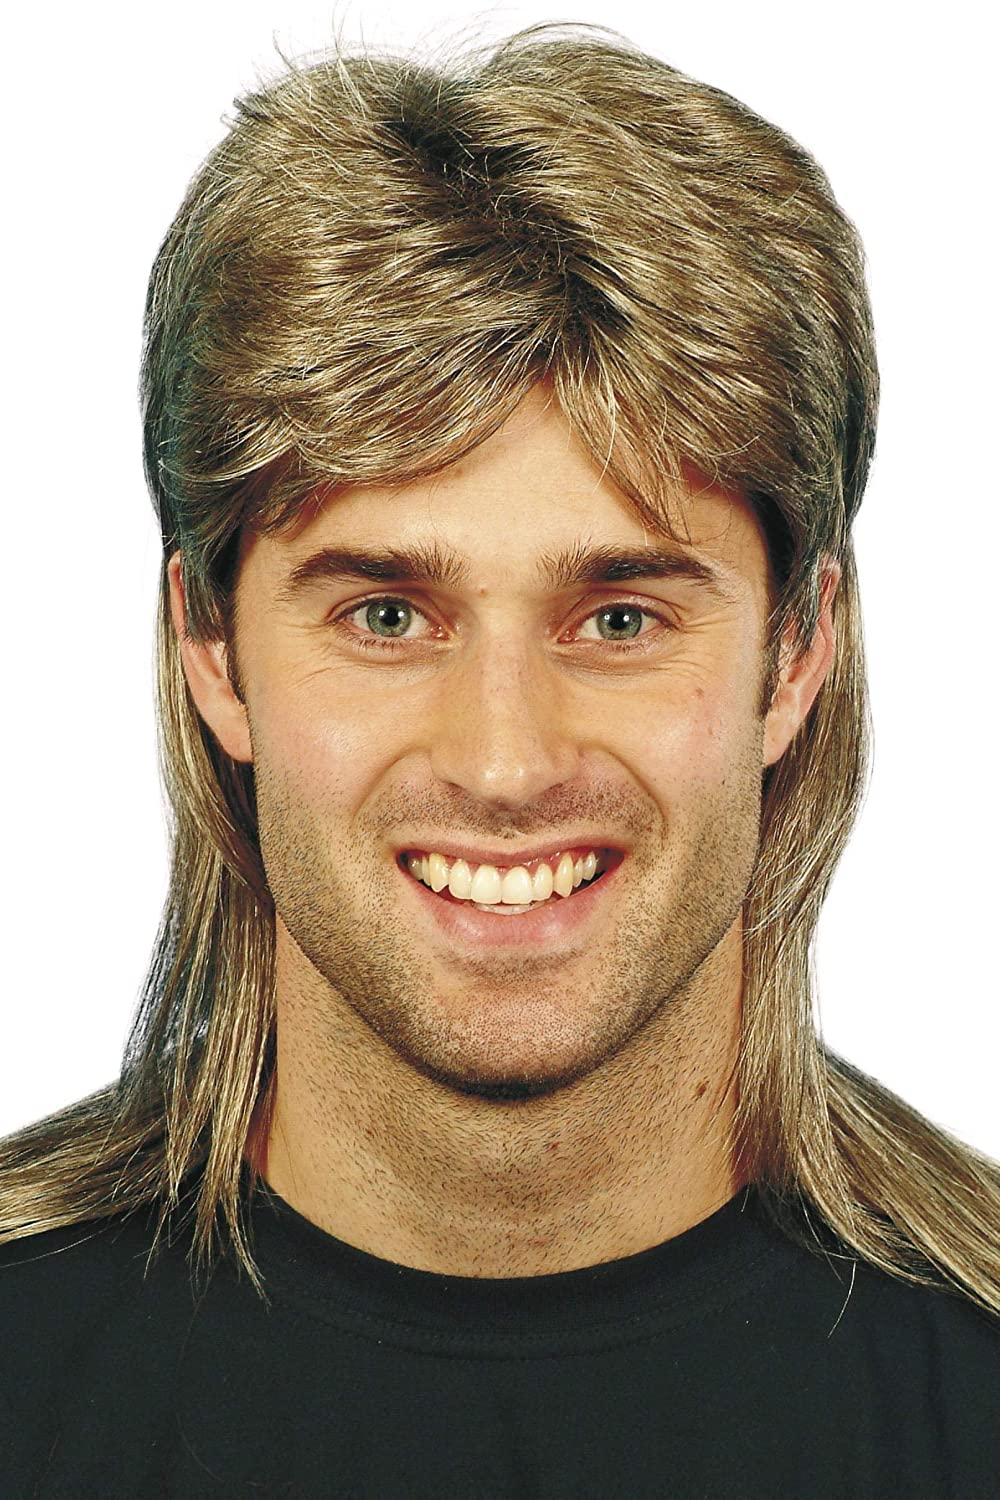 Smiffy's Men's Mullet Wig Highlights Brown One Size RH Smith & Sons LTD 42196